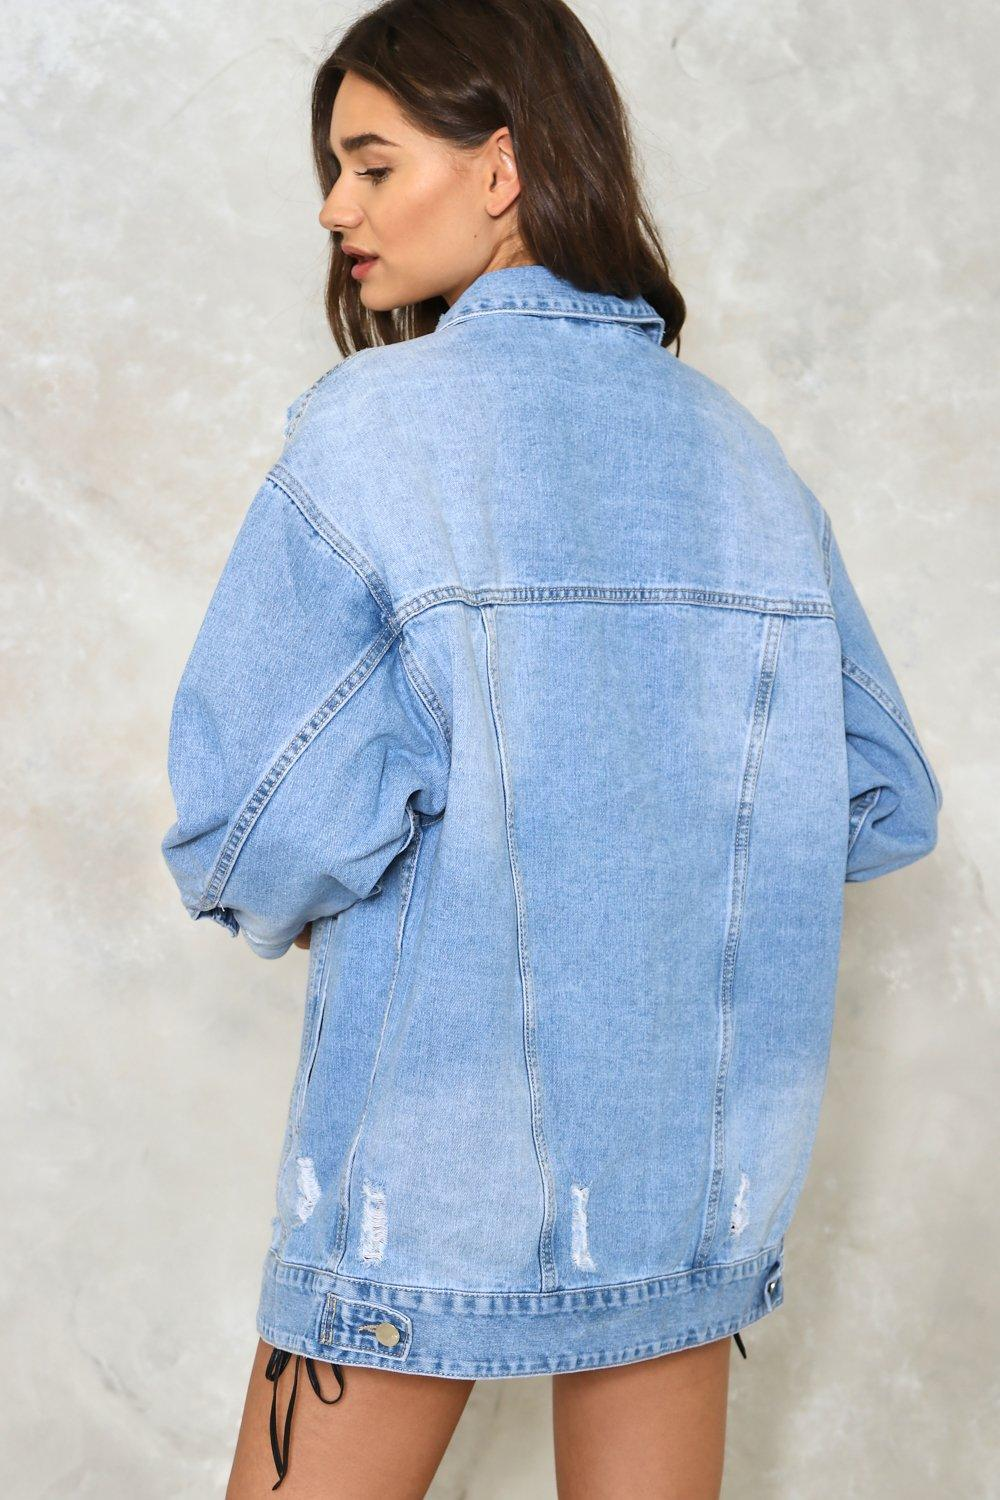 26252d6cd33f0 Day Tripper Oversized Denim Jacket | Shop Clothes at Nasty Gal!